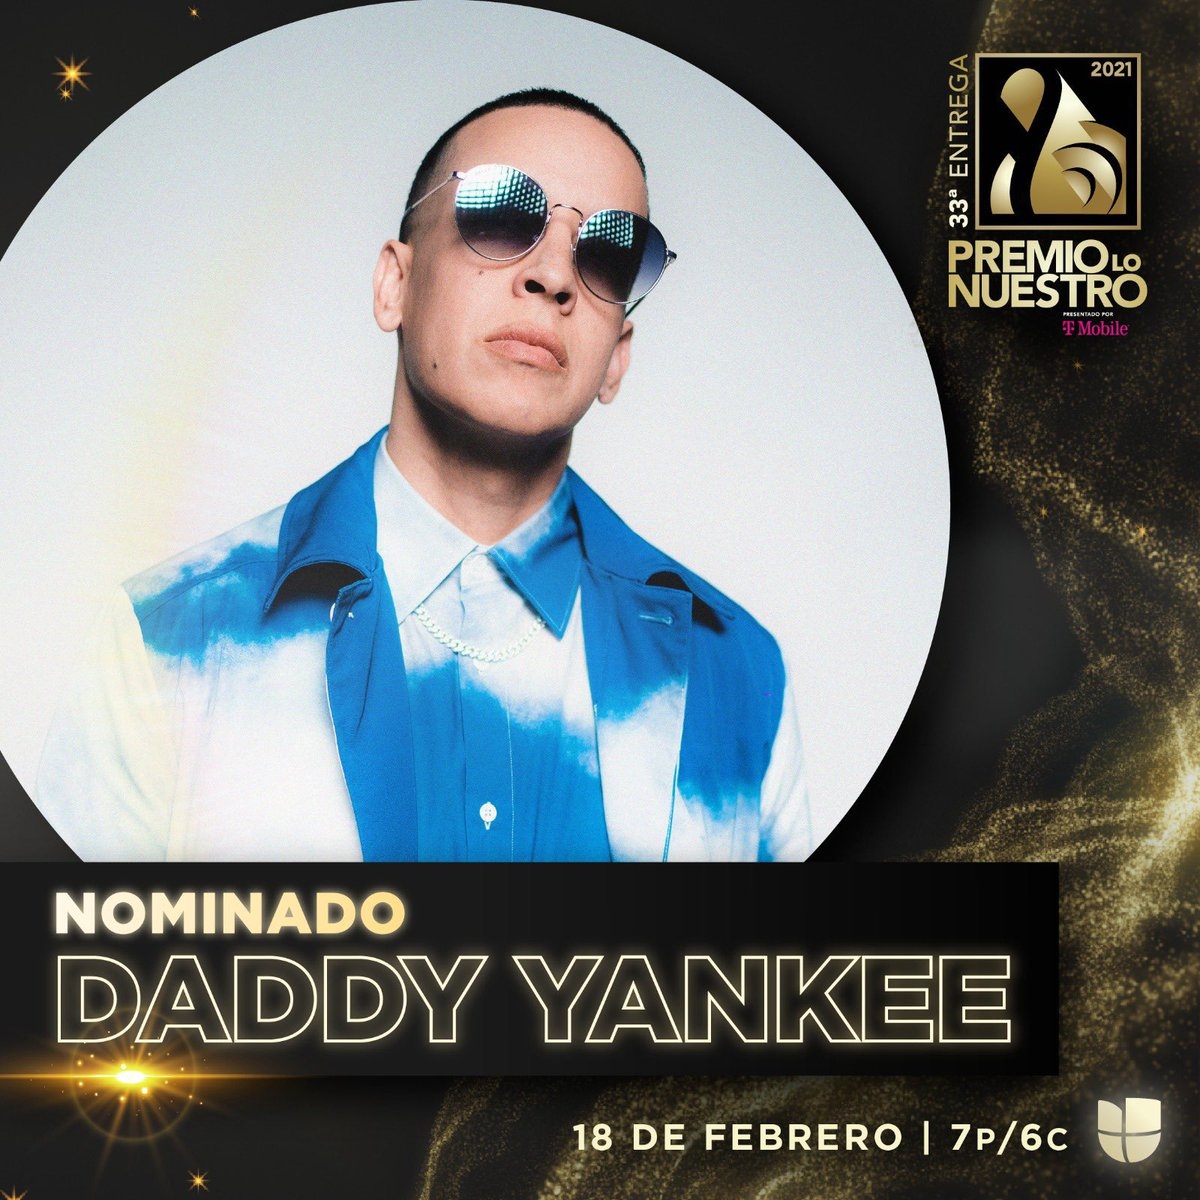 Daddy Yankee has been nominated in 4 categories at the Premio Lo Nuestro 2021:   - Male Artist of the Year (urban)  - Remix of the Year — Relación Remix  - Song of the Year (urban) — Que Tire Pa' Lante, Muévelo  - Collaboration of the year (urban) - Muévelo